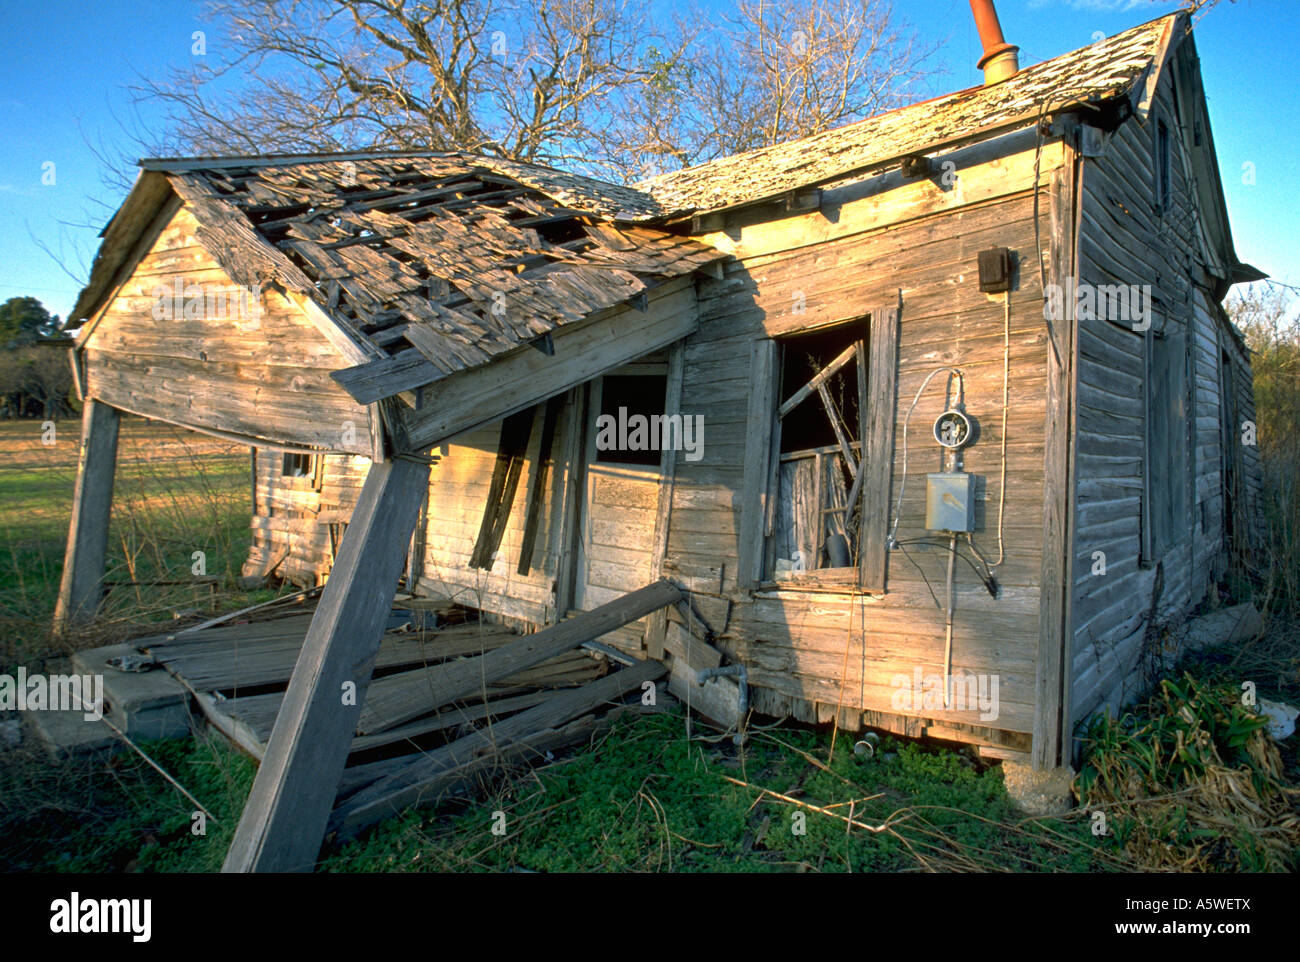 Painet hl0147 texas shack home house falling apart old for Shack homes